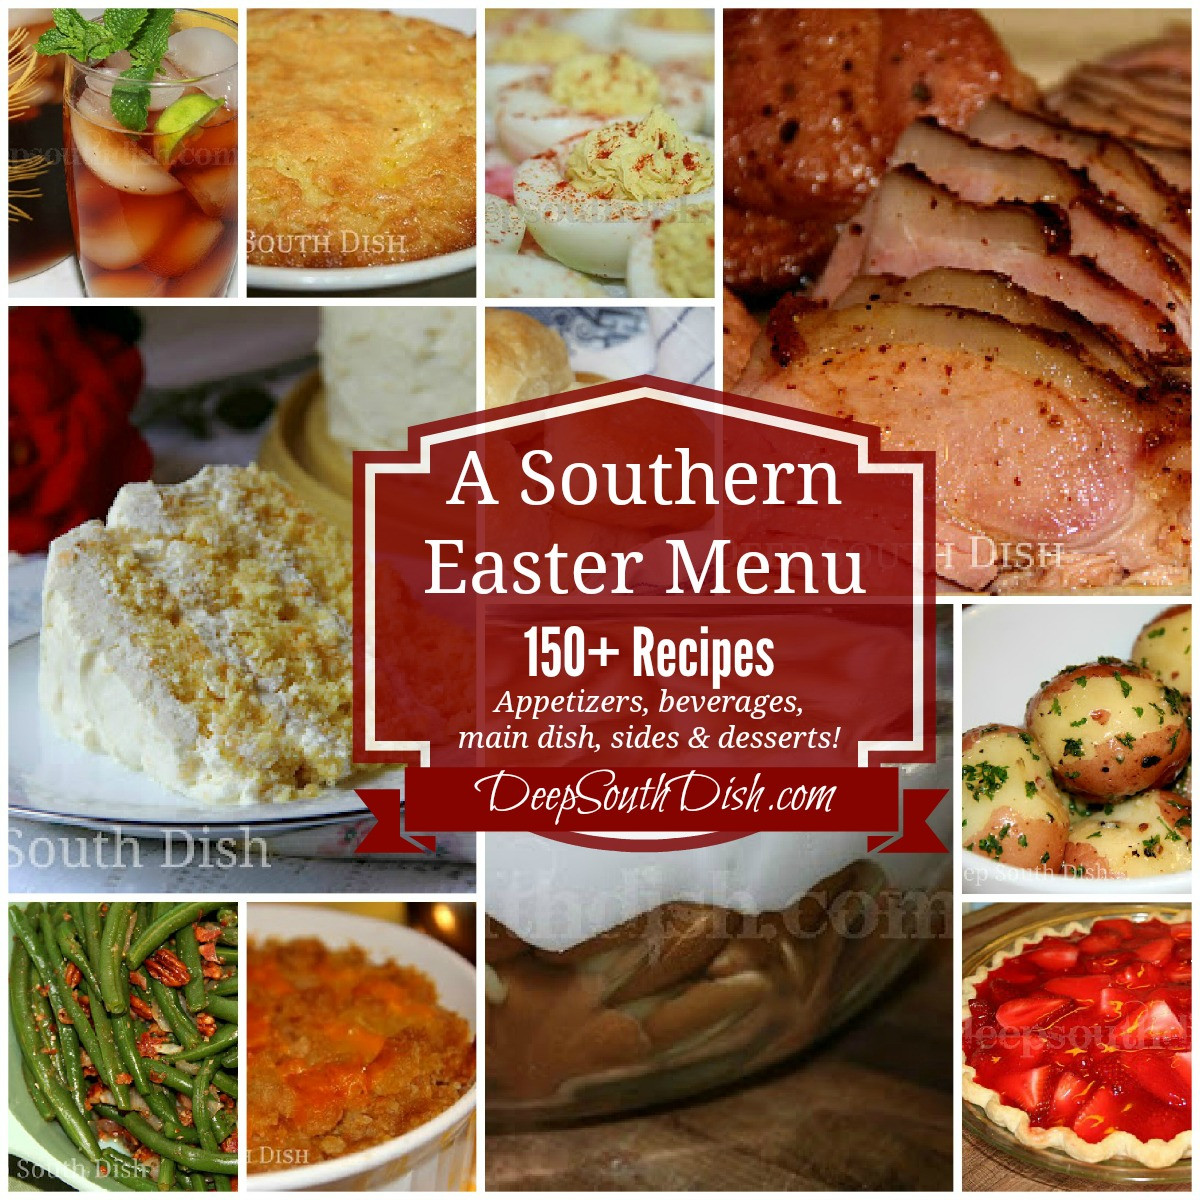 Suggestions For Easter Dinner Menu  Deep South Dish Southern Easter Menu Ideas and Recipes